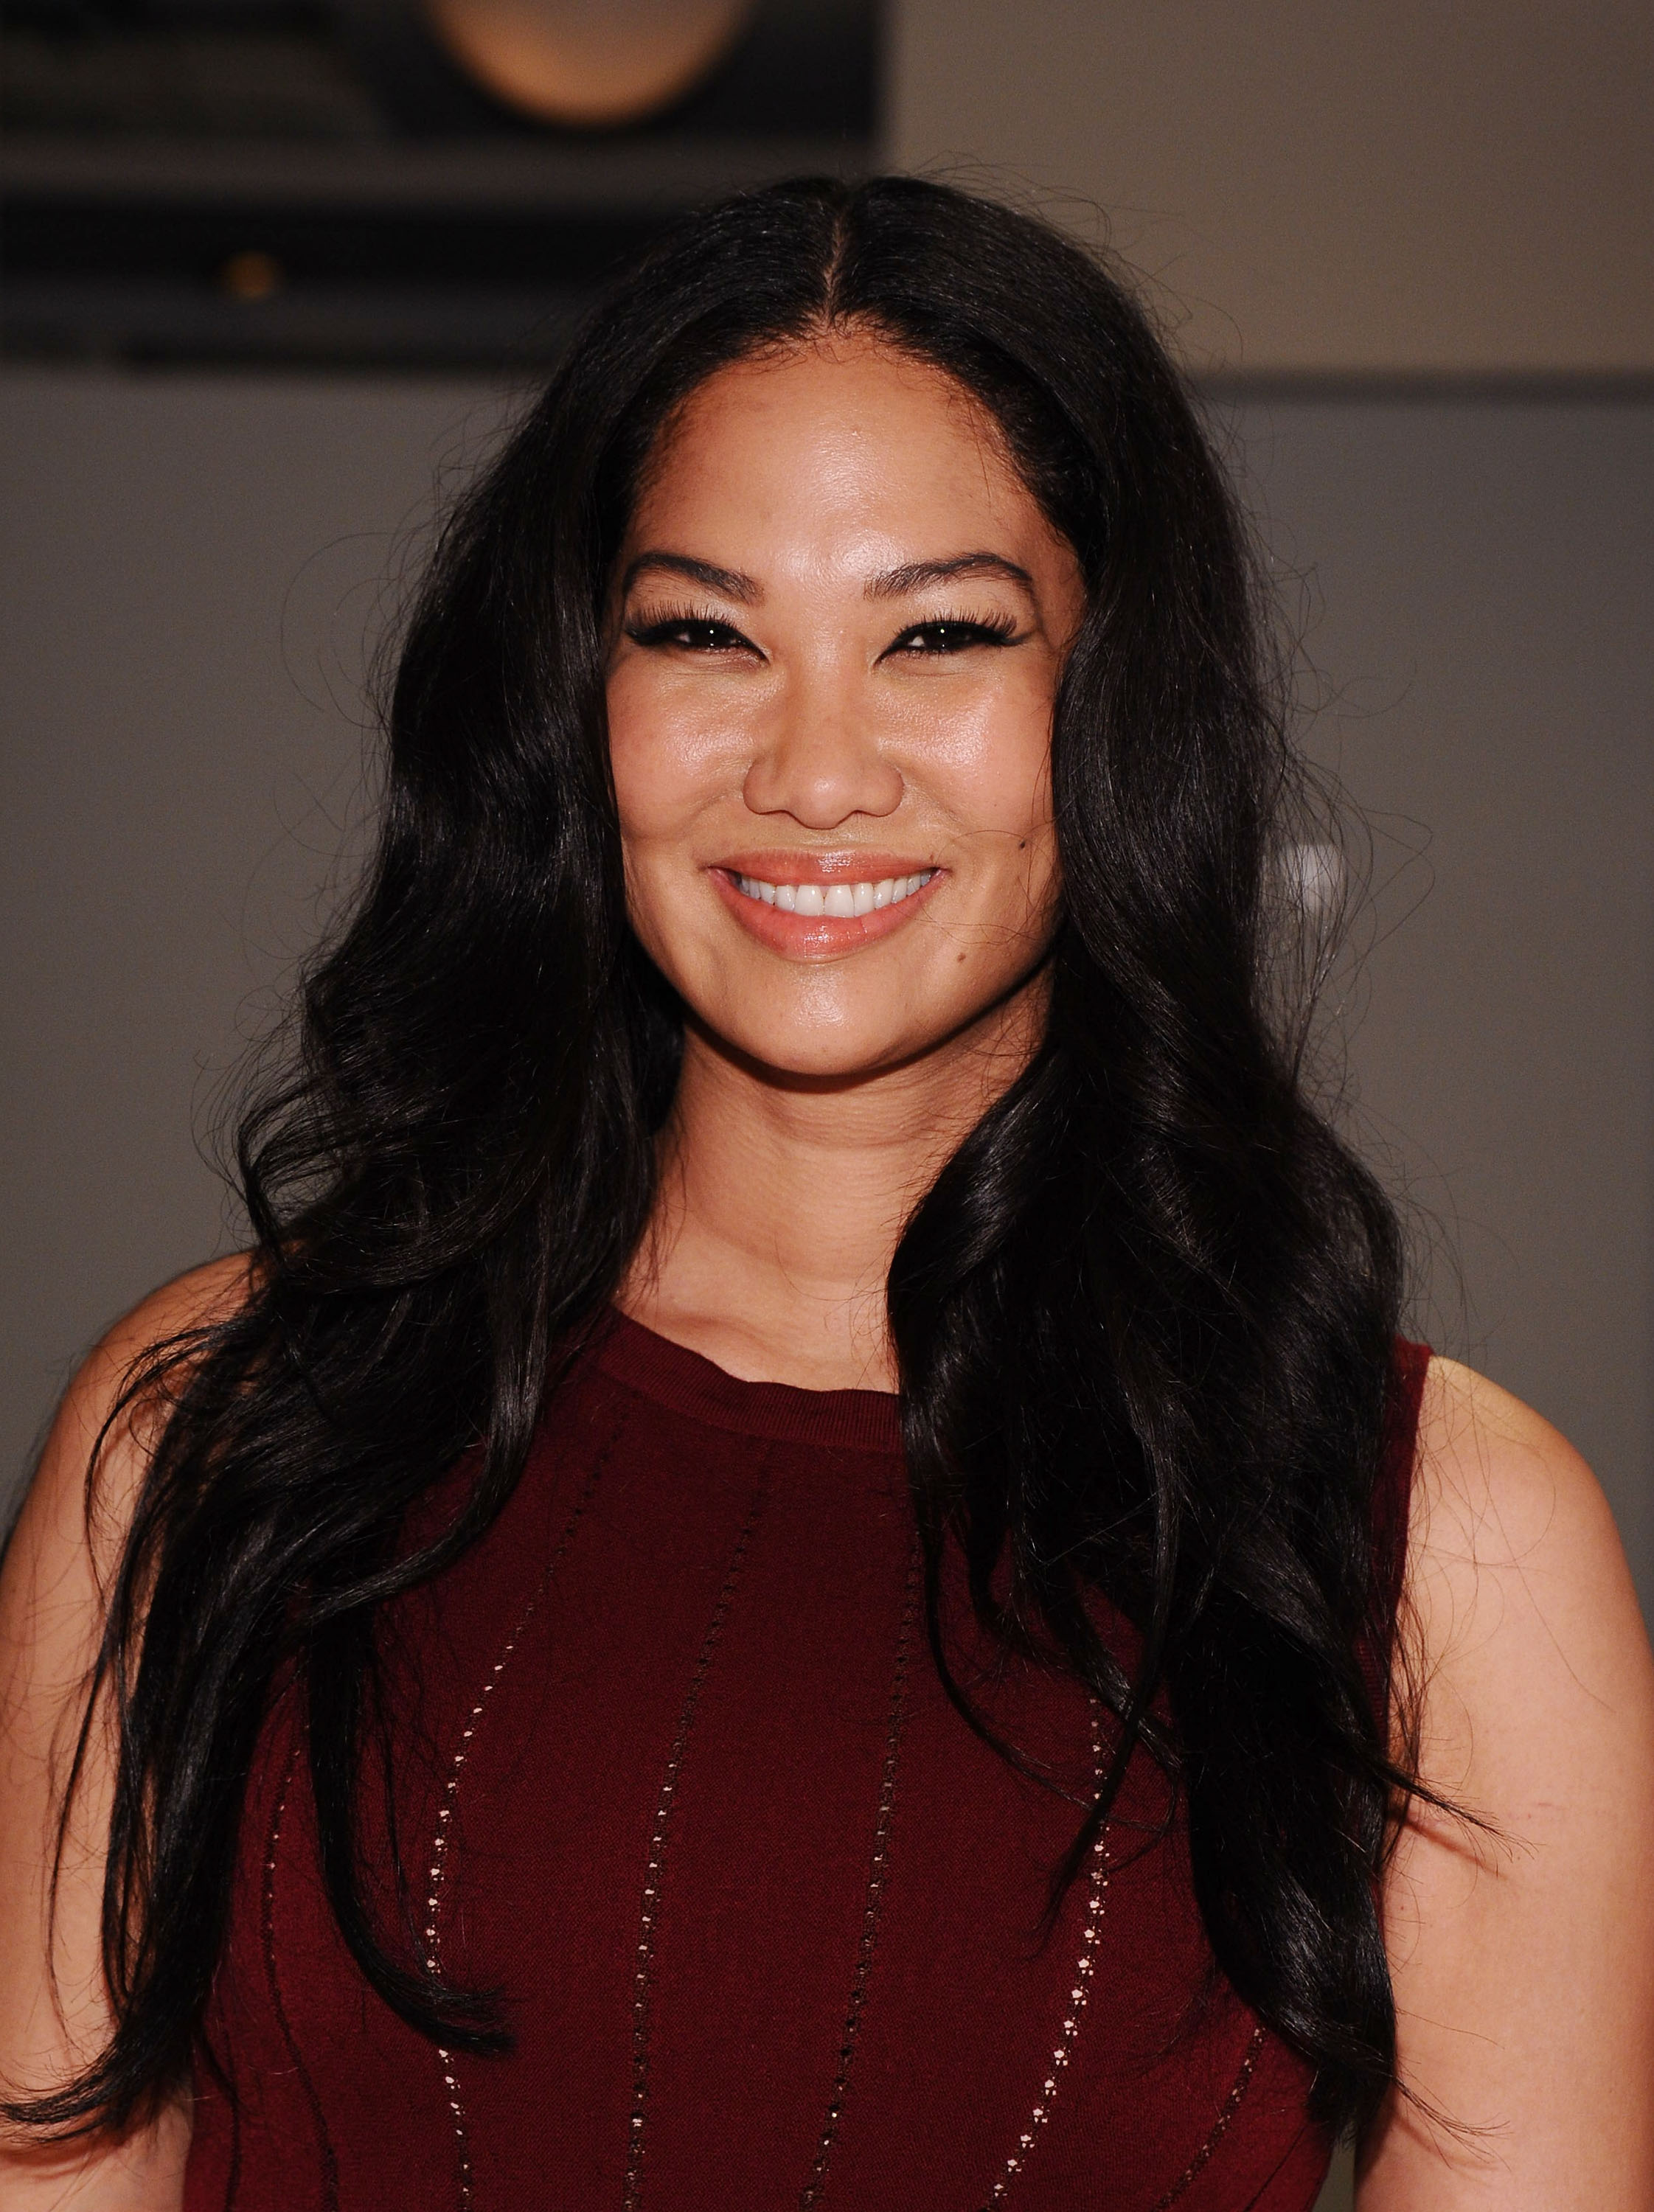 Kimora Lee Simmons at the Argyleculture By Russell Simmons fashion show during Mercedes-Benz Fashion Week in September 2014. | Photo: Getty Images